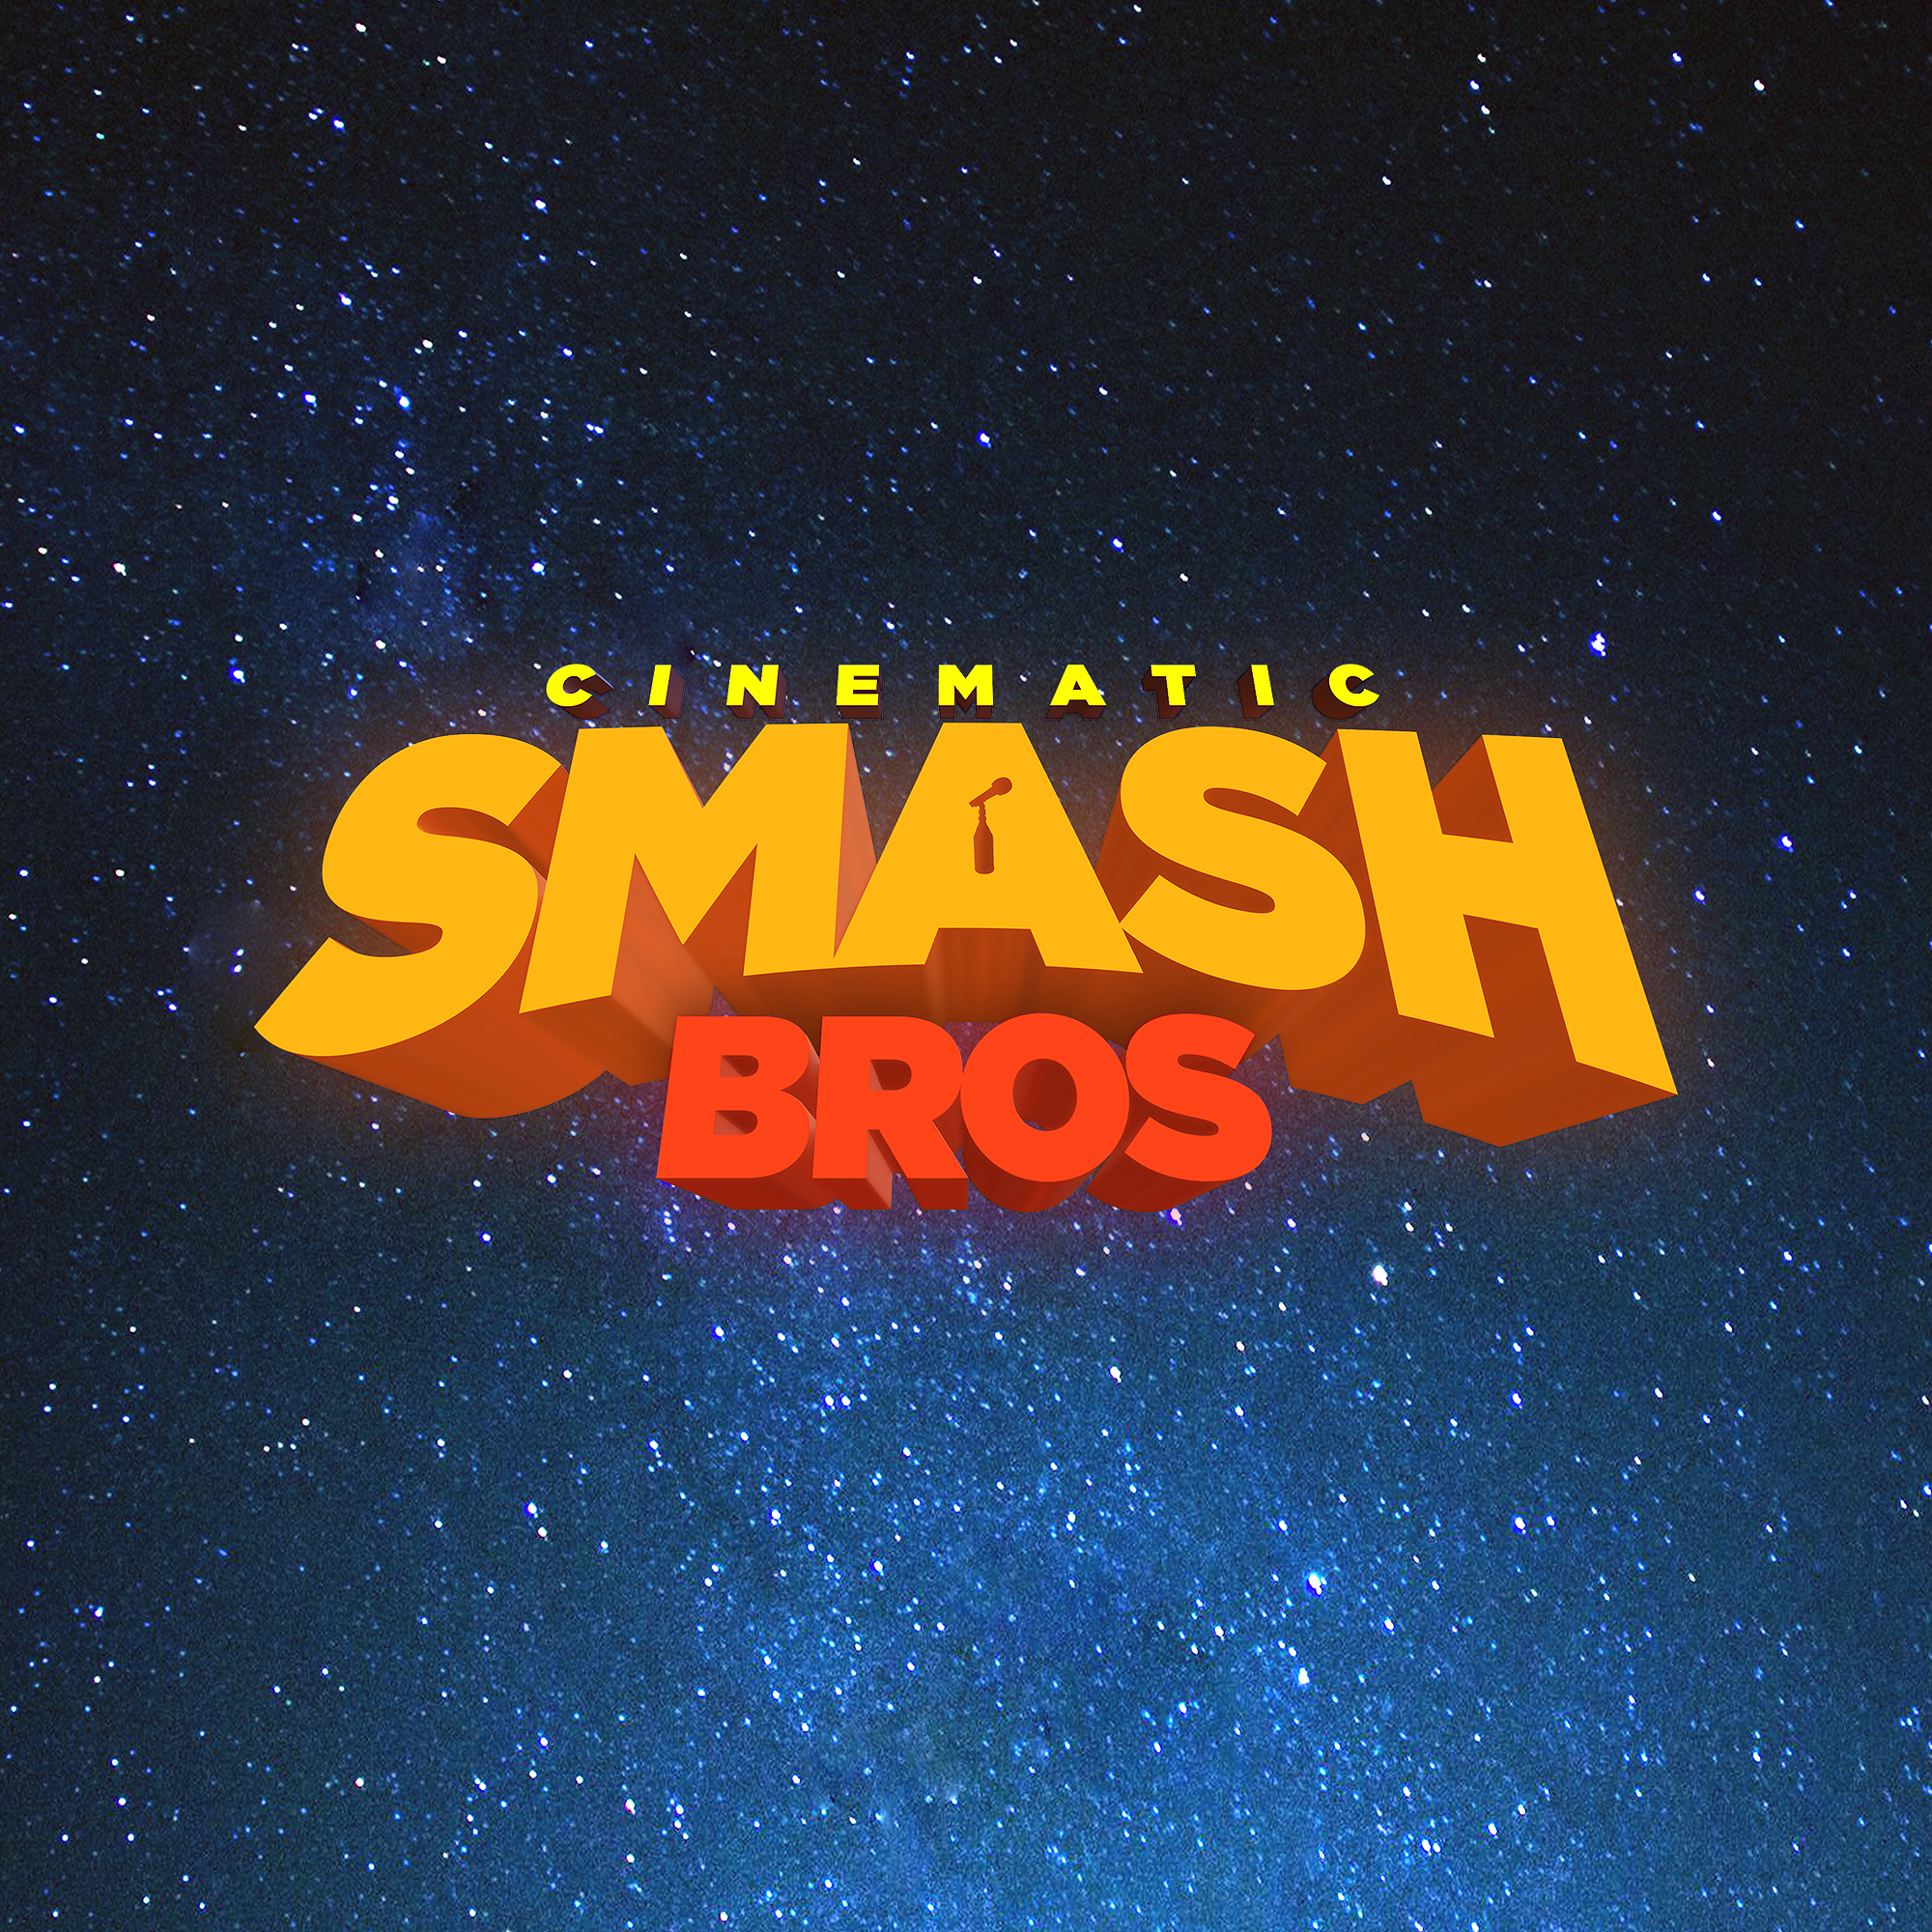 Cinematic Smash Bros.